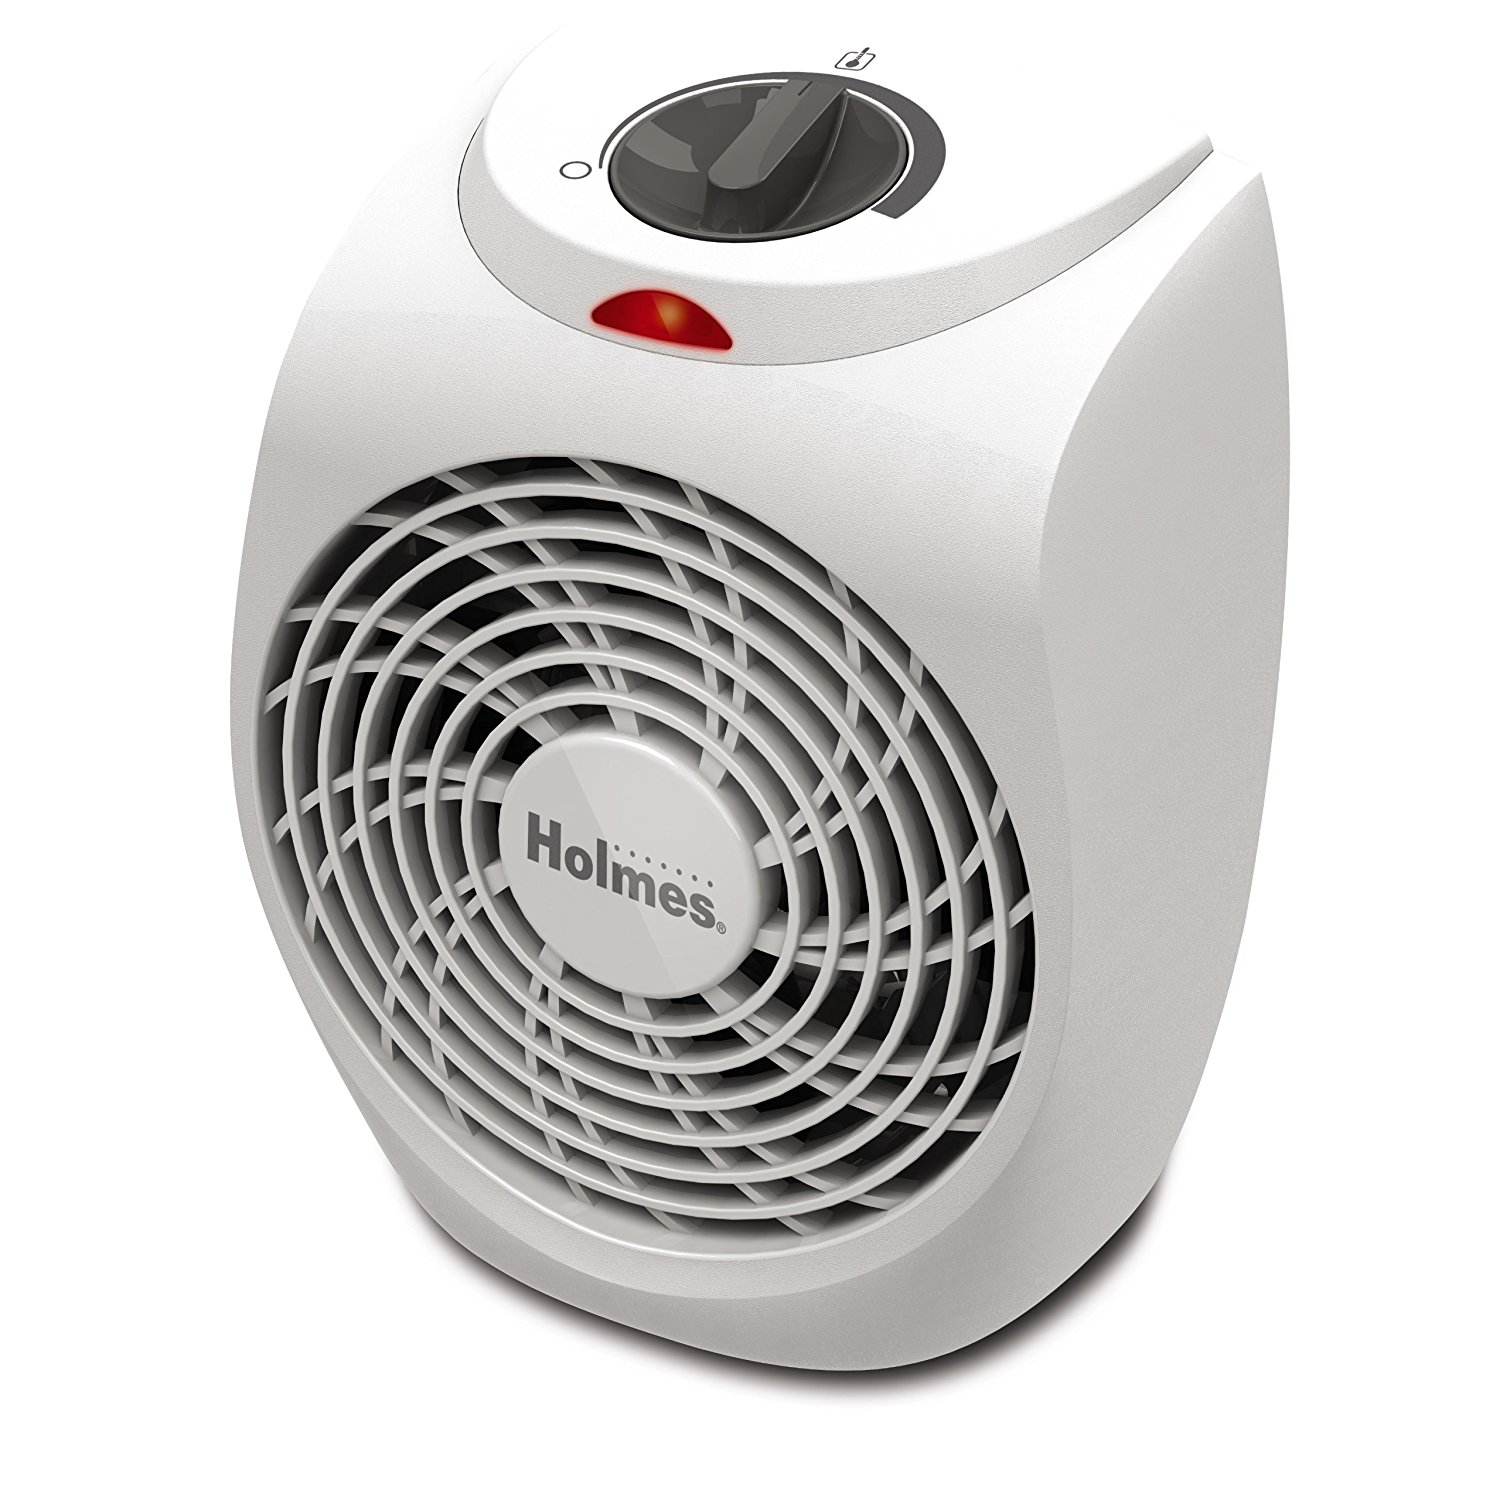 Holmes HEATER, SLIM, 1 TOUCH (Replaces HOLHFH440U) Compact Heater with Manual Controls, HFH131-N-TG